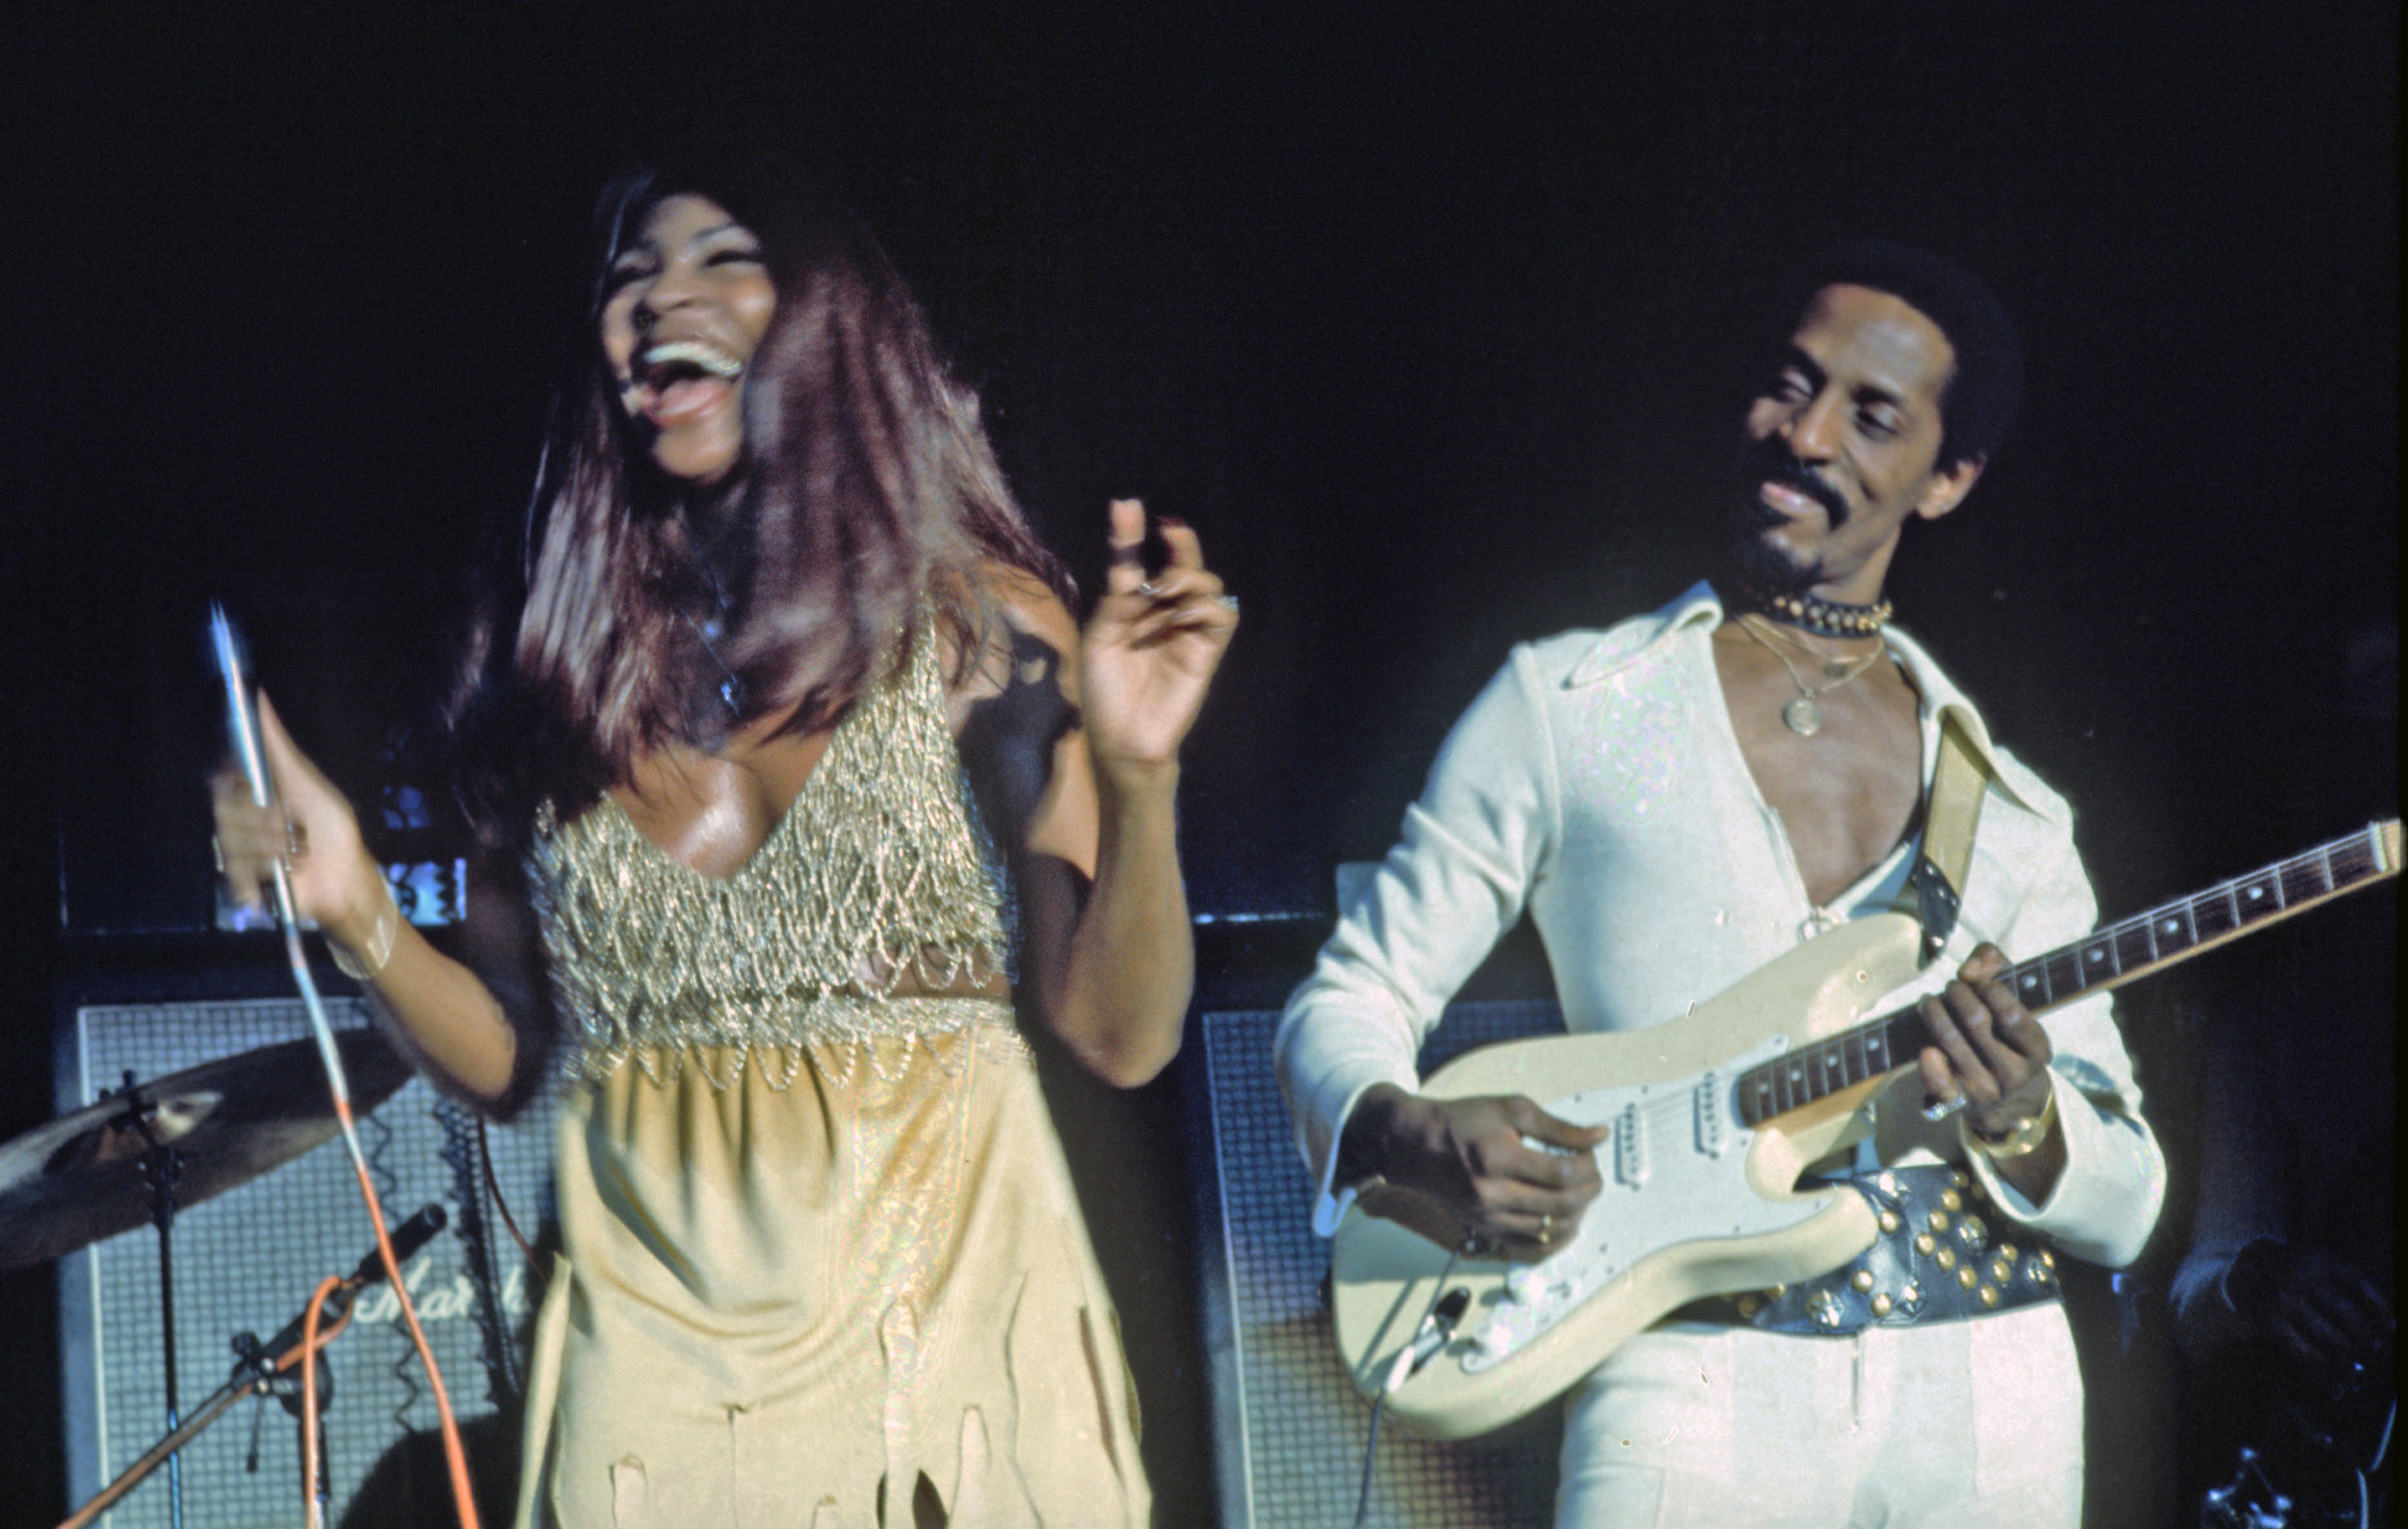 Tina Turner and her husband - Two musicians. One shoe stretcher. One strong, independent woman who don't need no man.